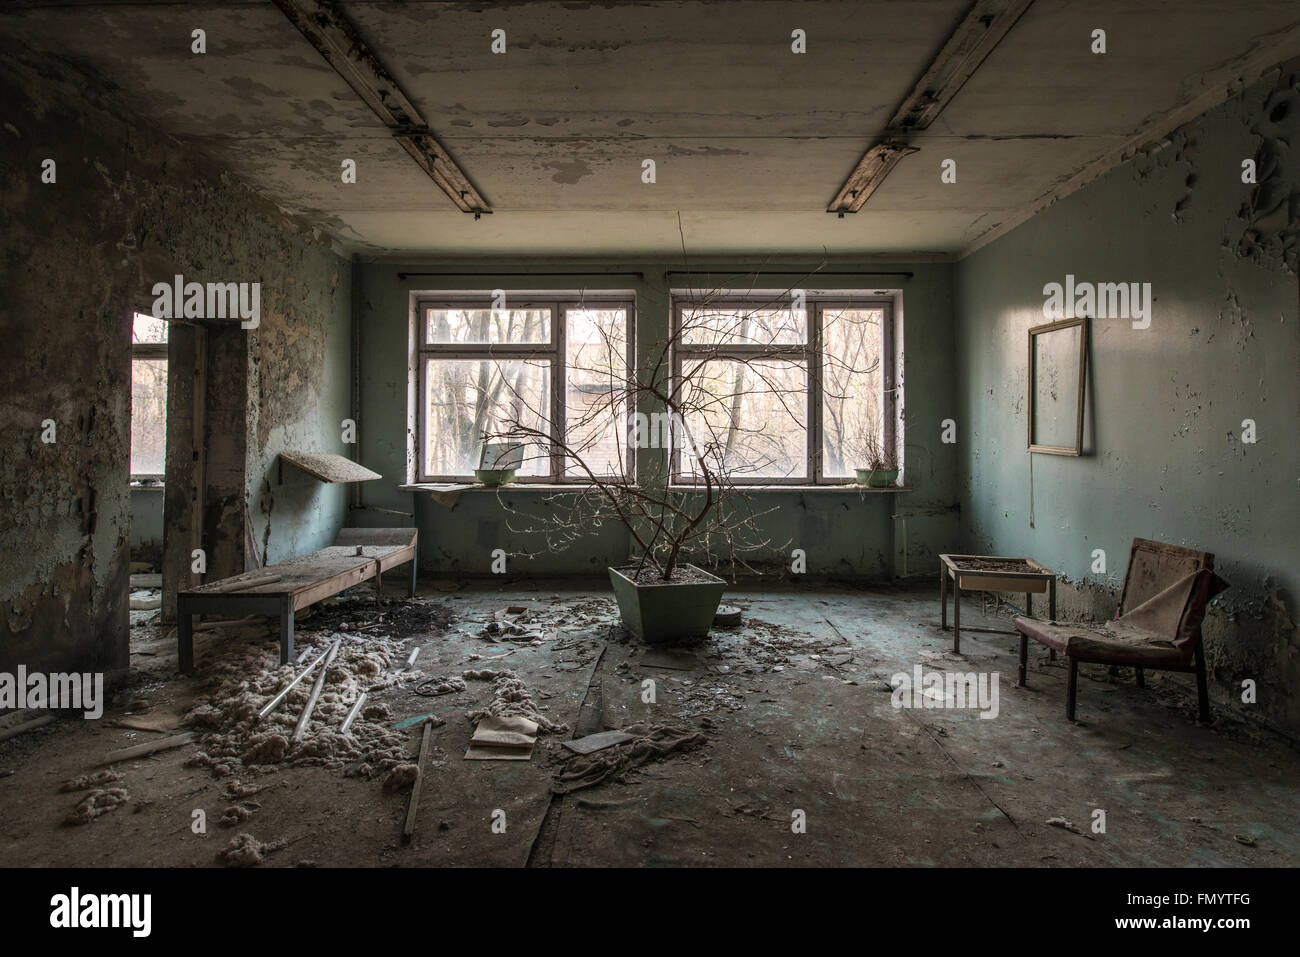 Hospital waiting area in Pripyat, Chernobyl scene of 1986 nuclear disaster - Stock Image